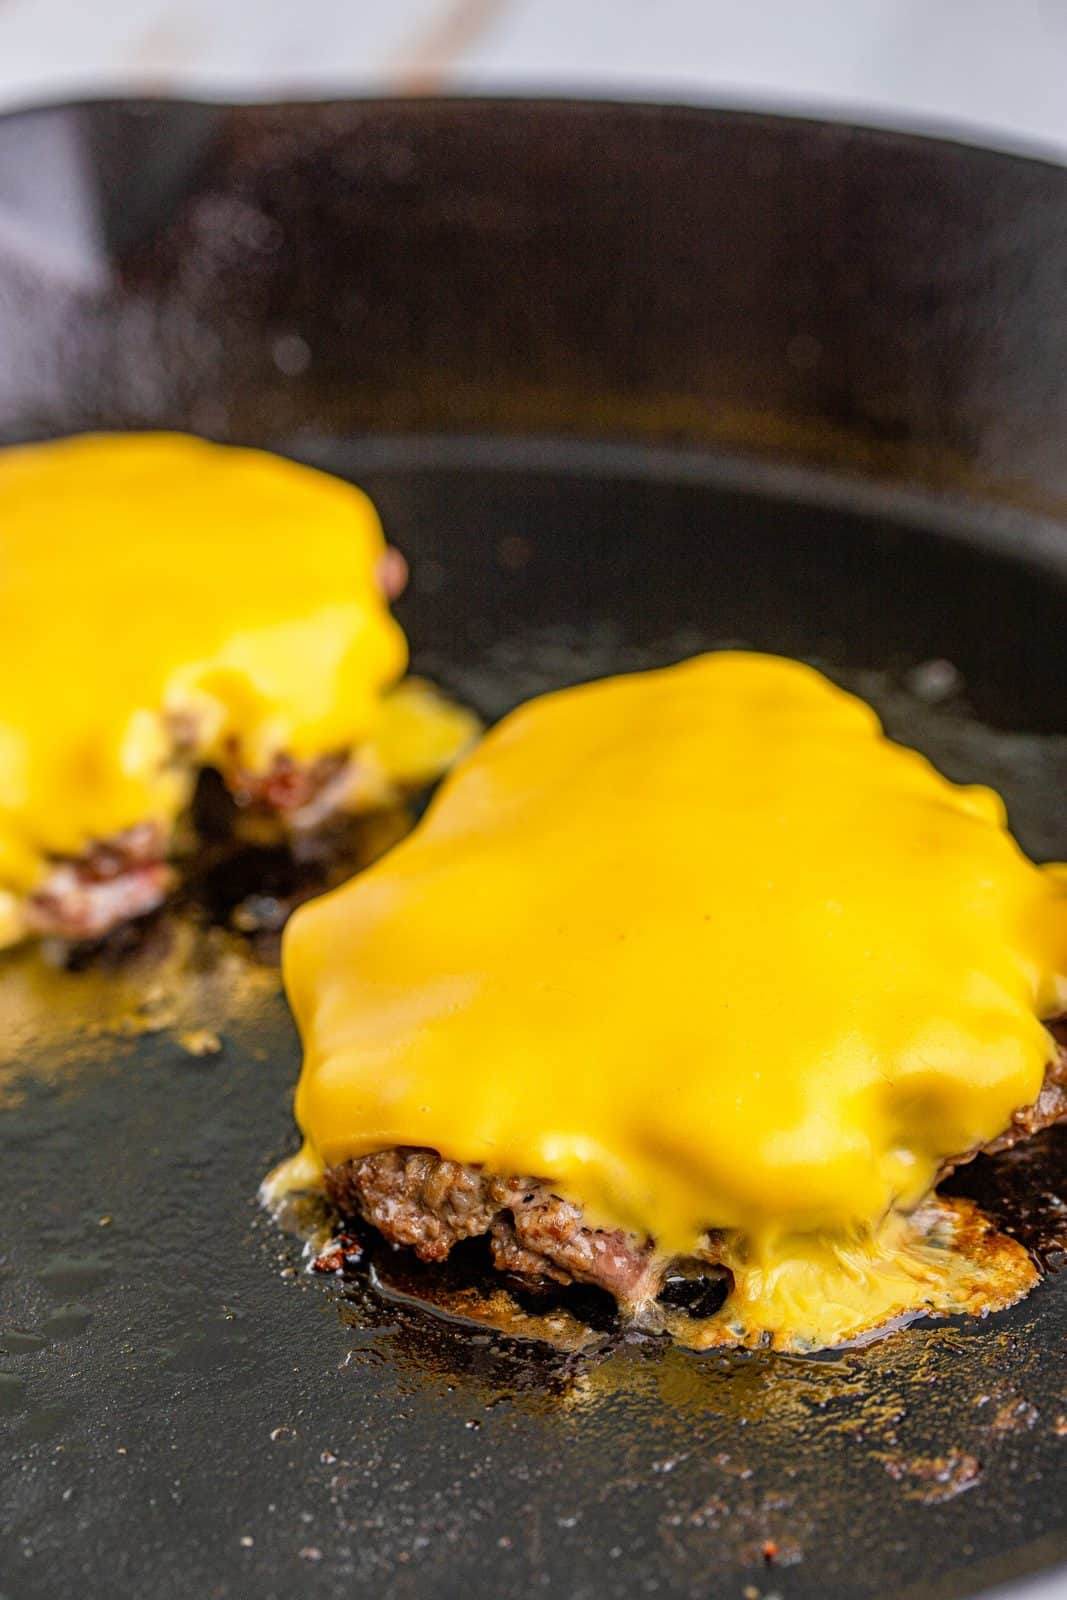 melted cheese shown on top of cooked steak burgers in a black cast iron skillet